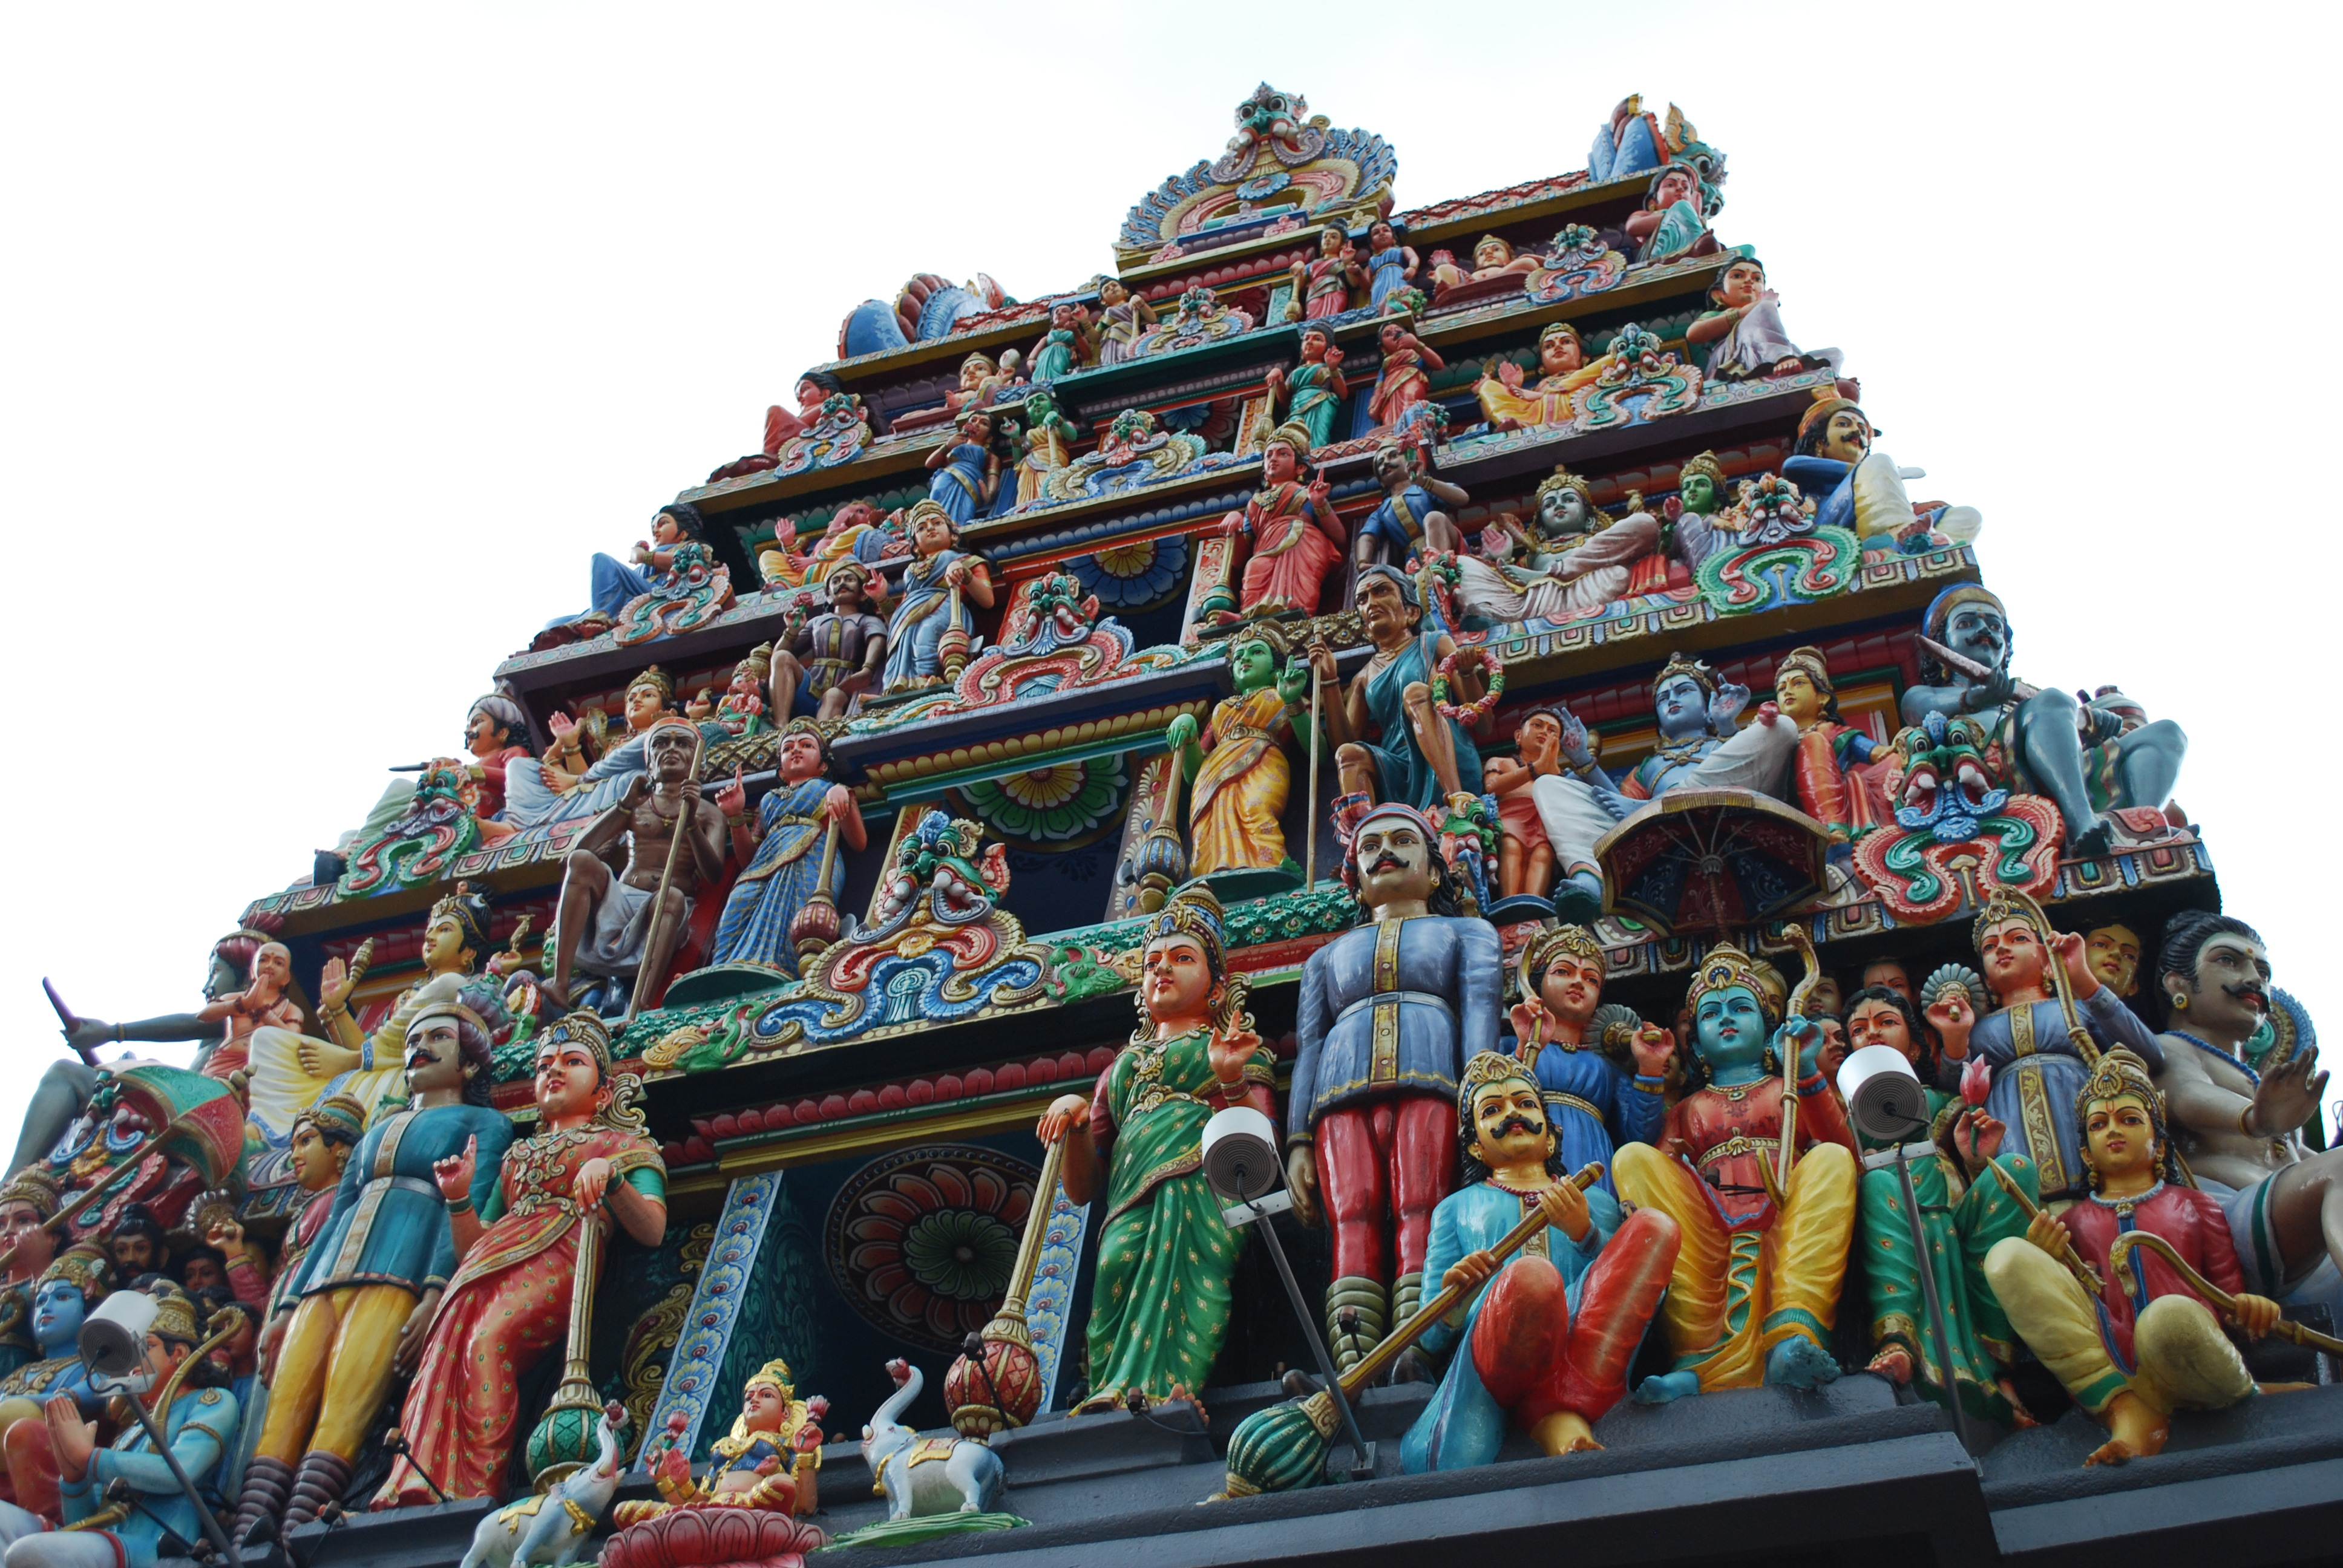 File:Sri Mariamman Temple in Singapore.jpg - Wikimedia Commons